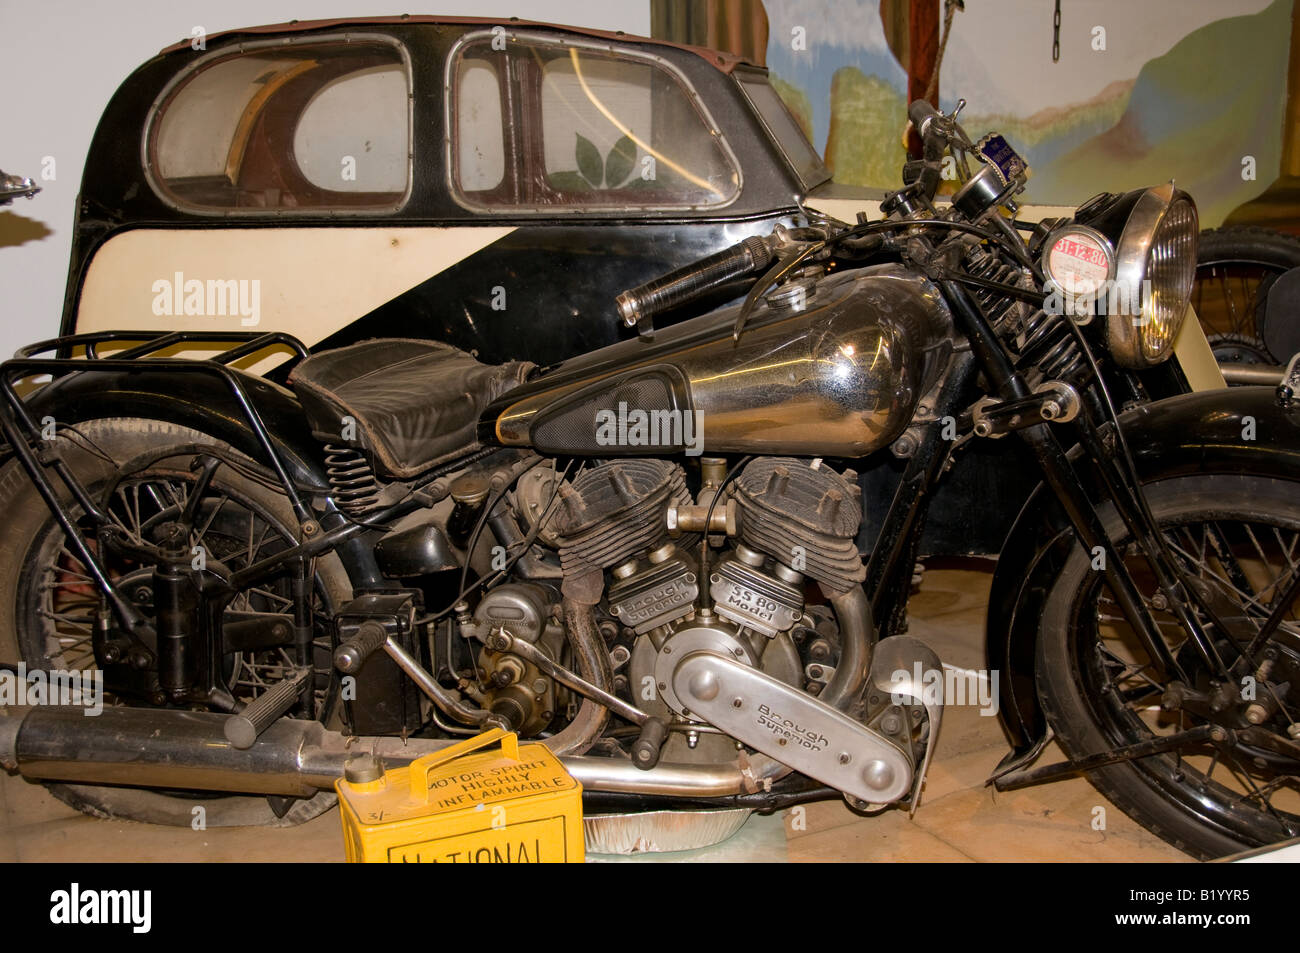 Brough superior motorbike and sidecar vintage stock image